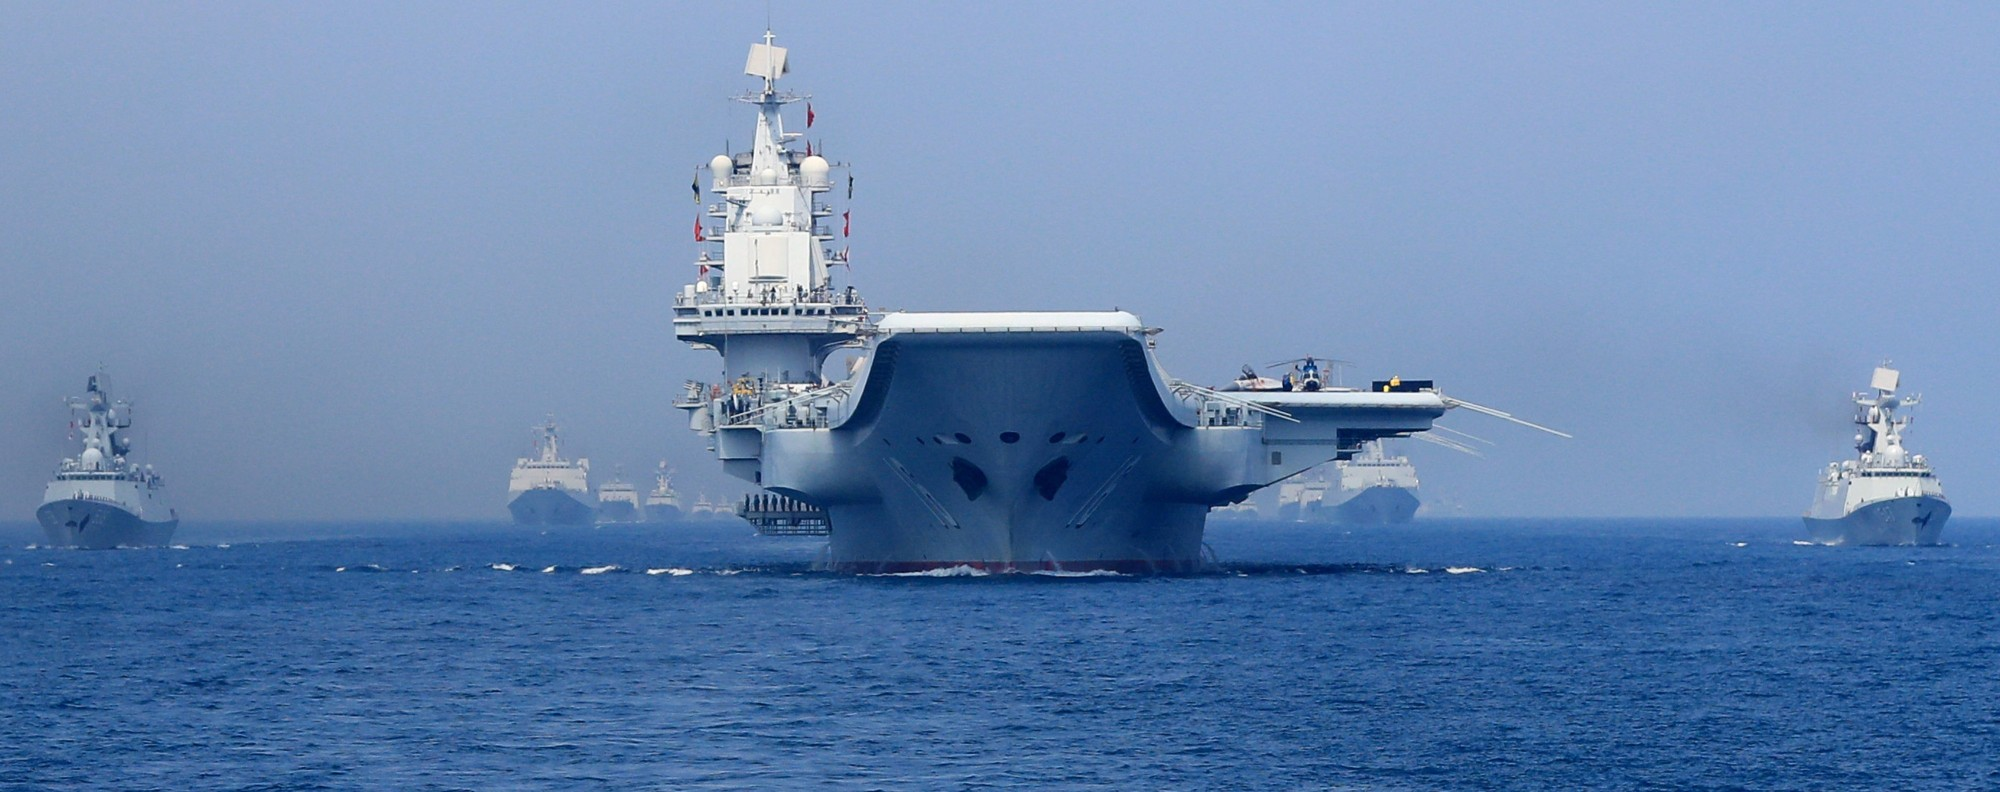 The PLA navy in the South China Sea. Photo: Reuters